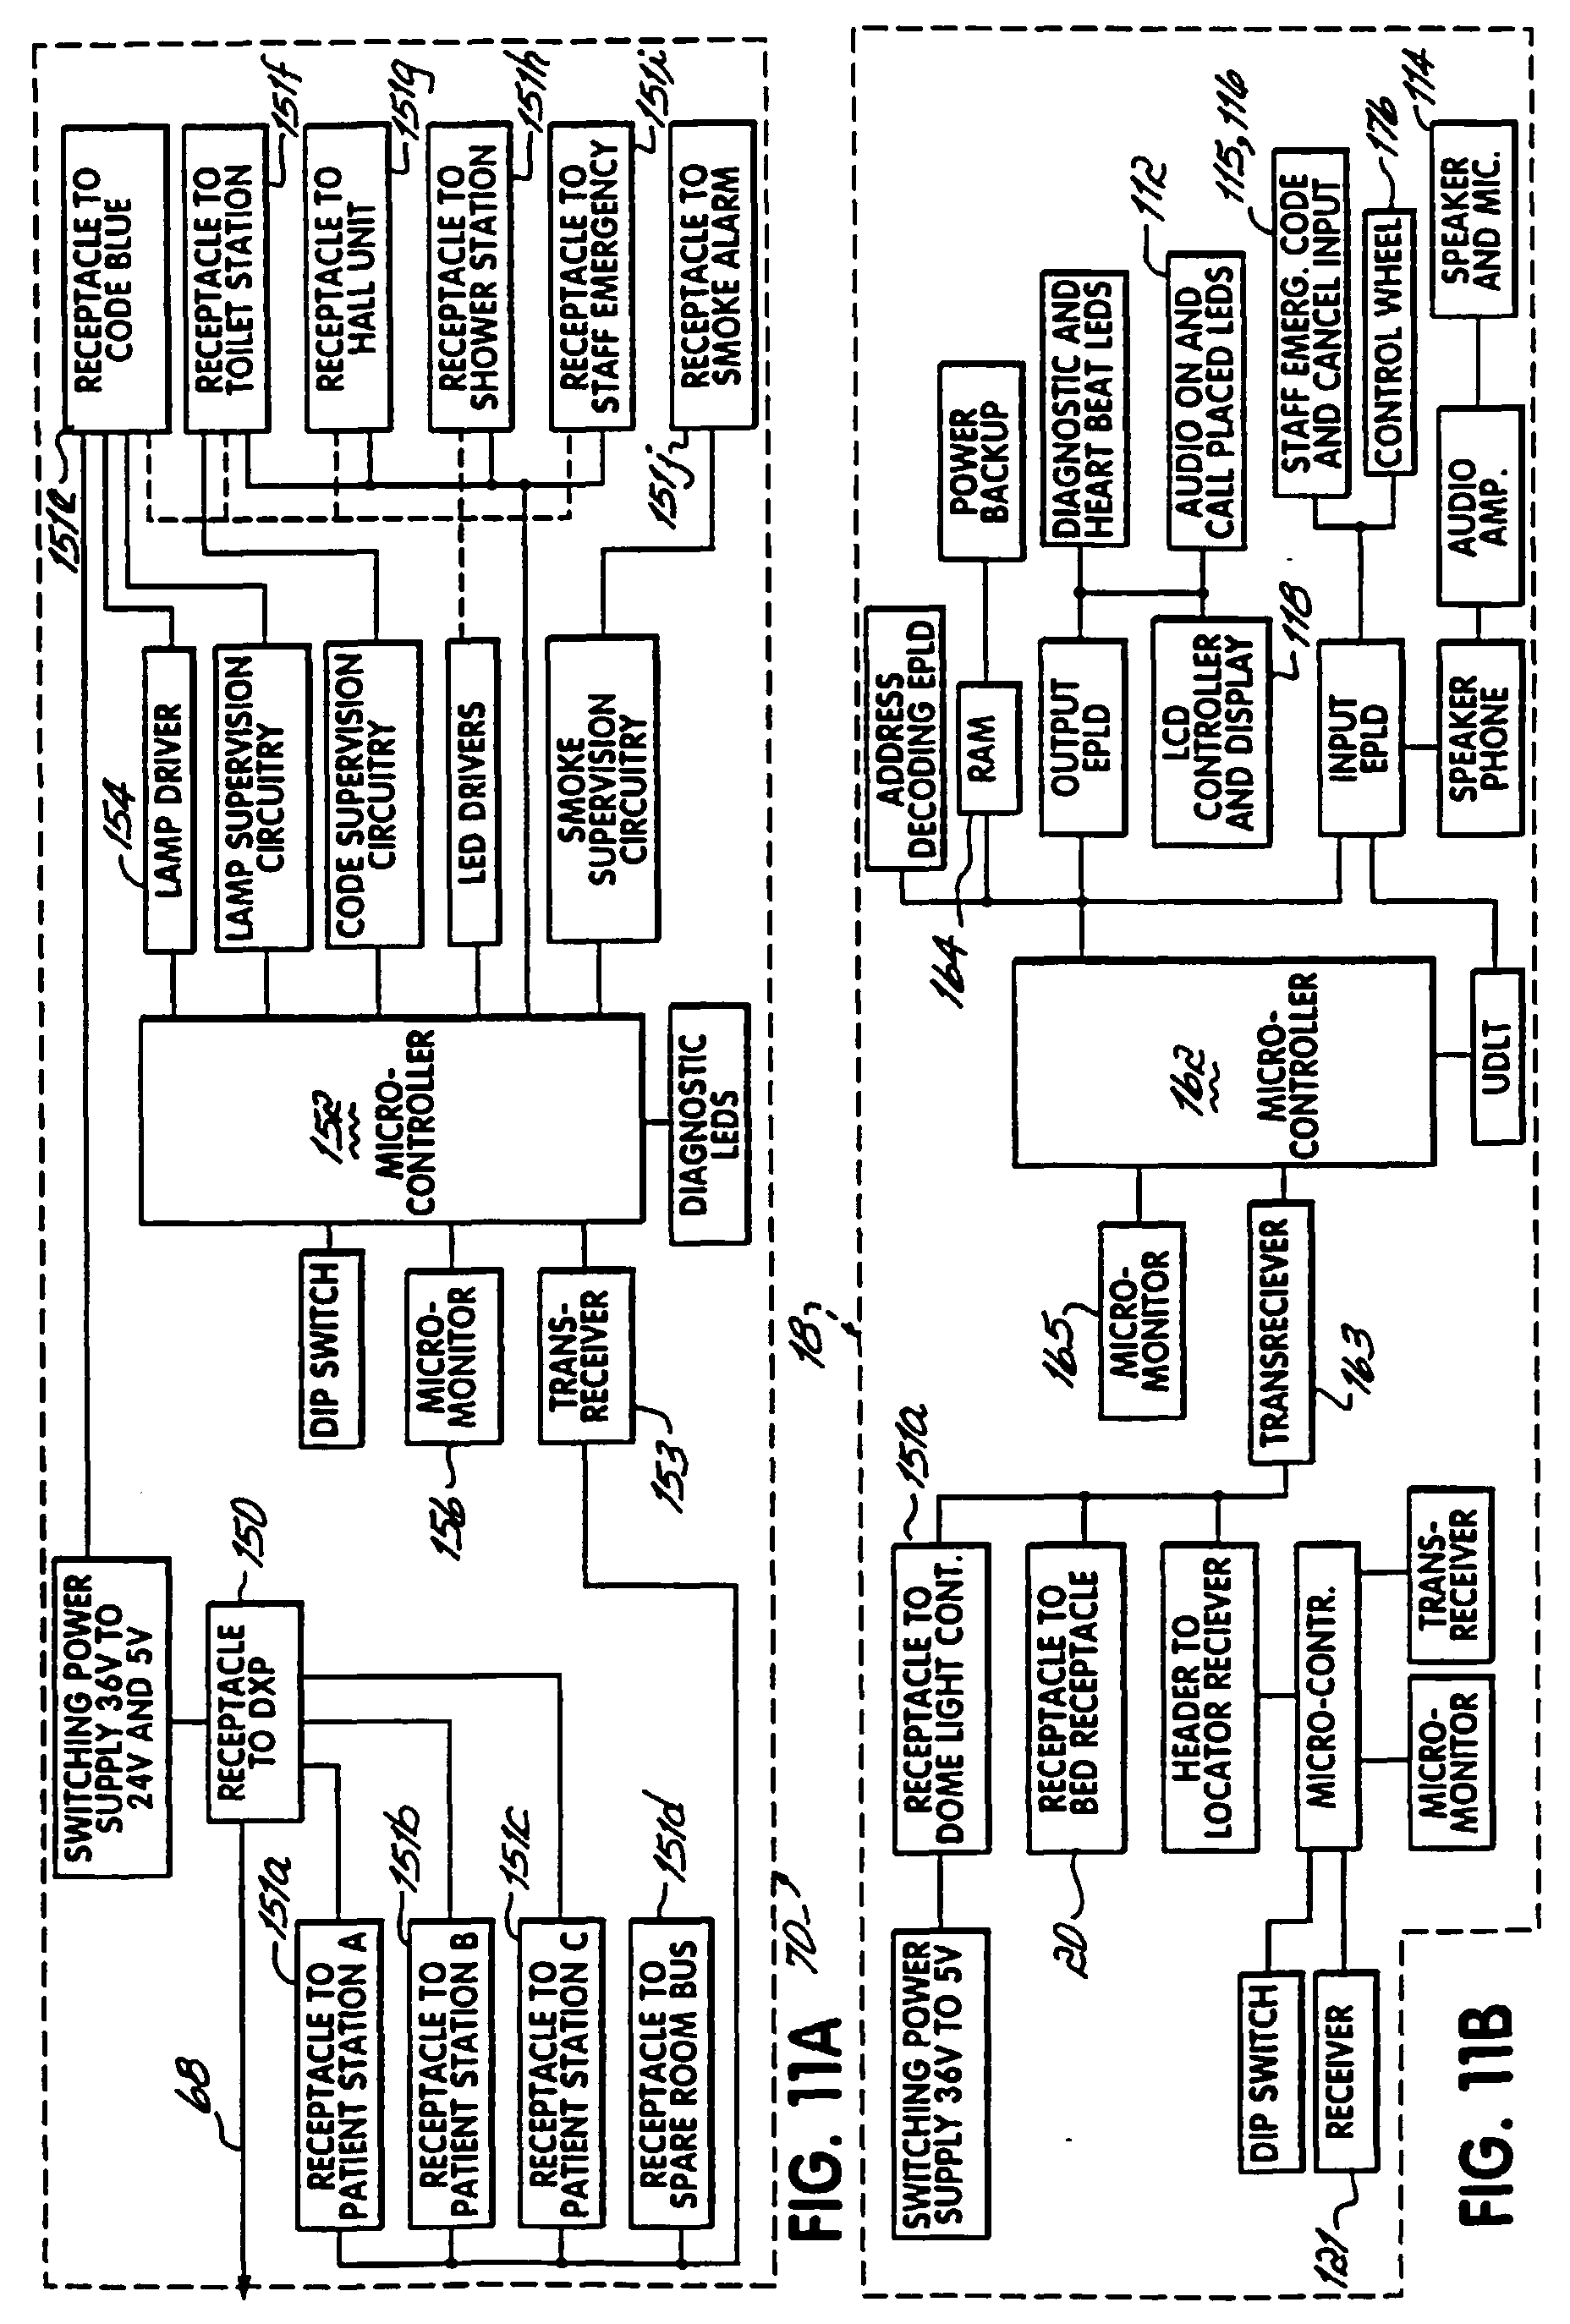 nurse call system wiring diagram